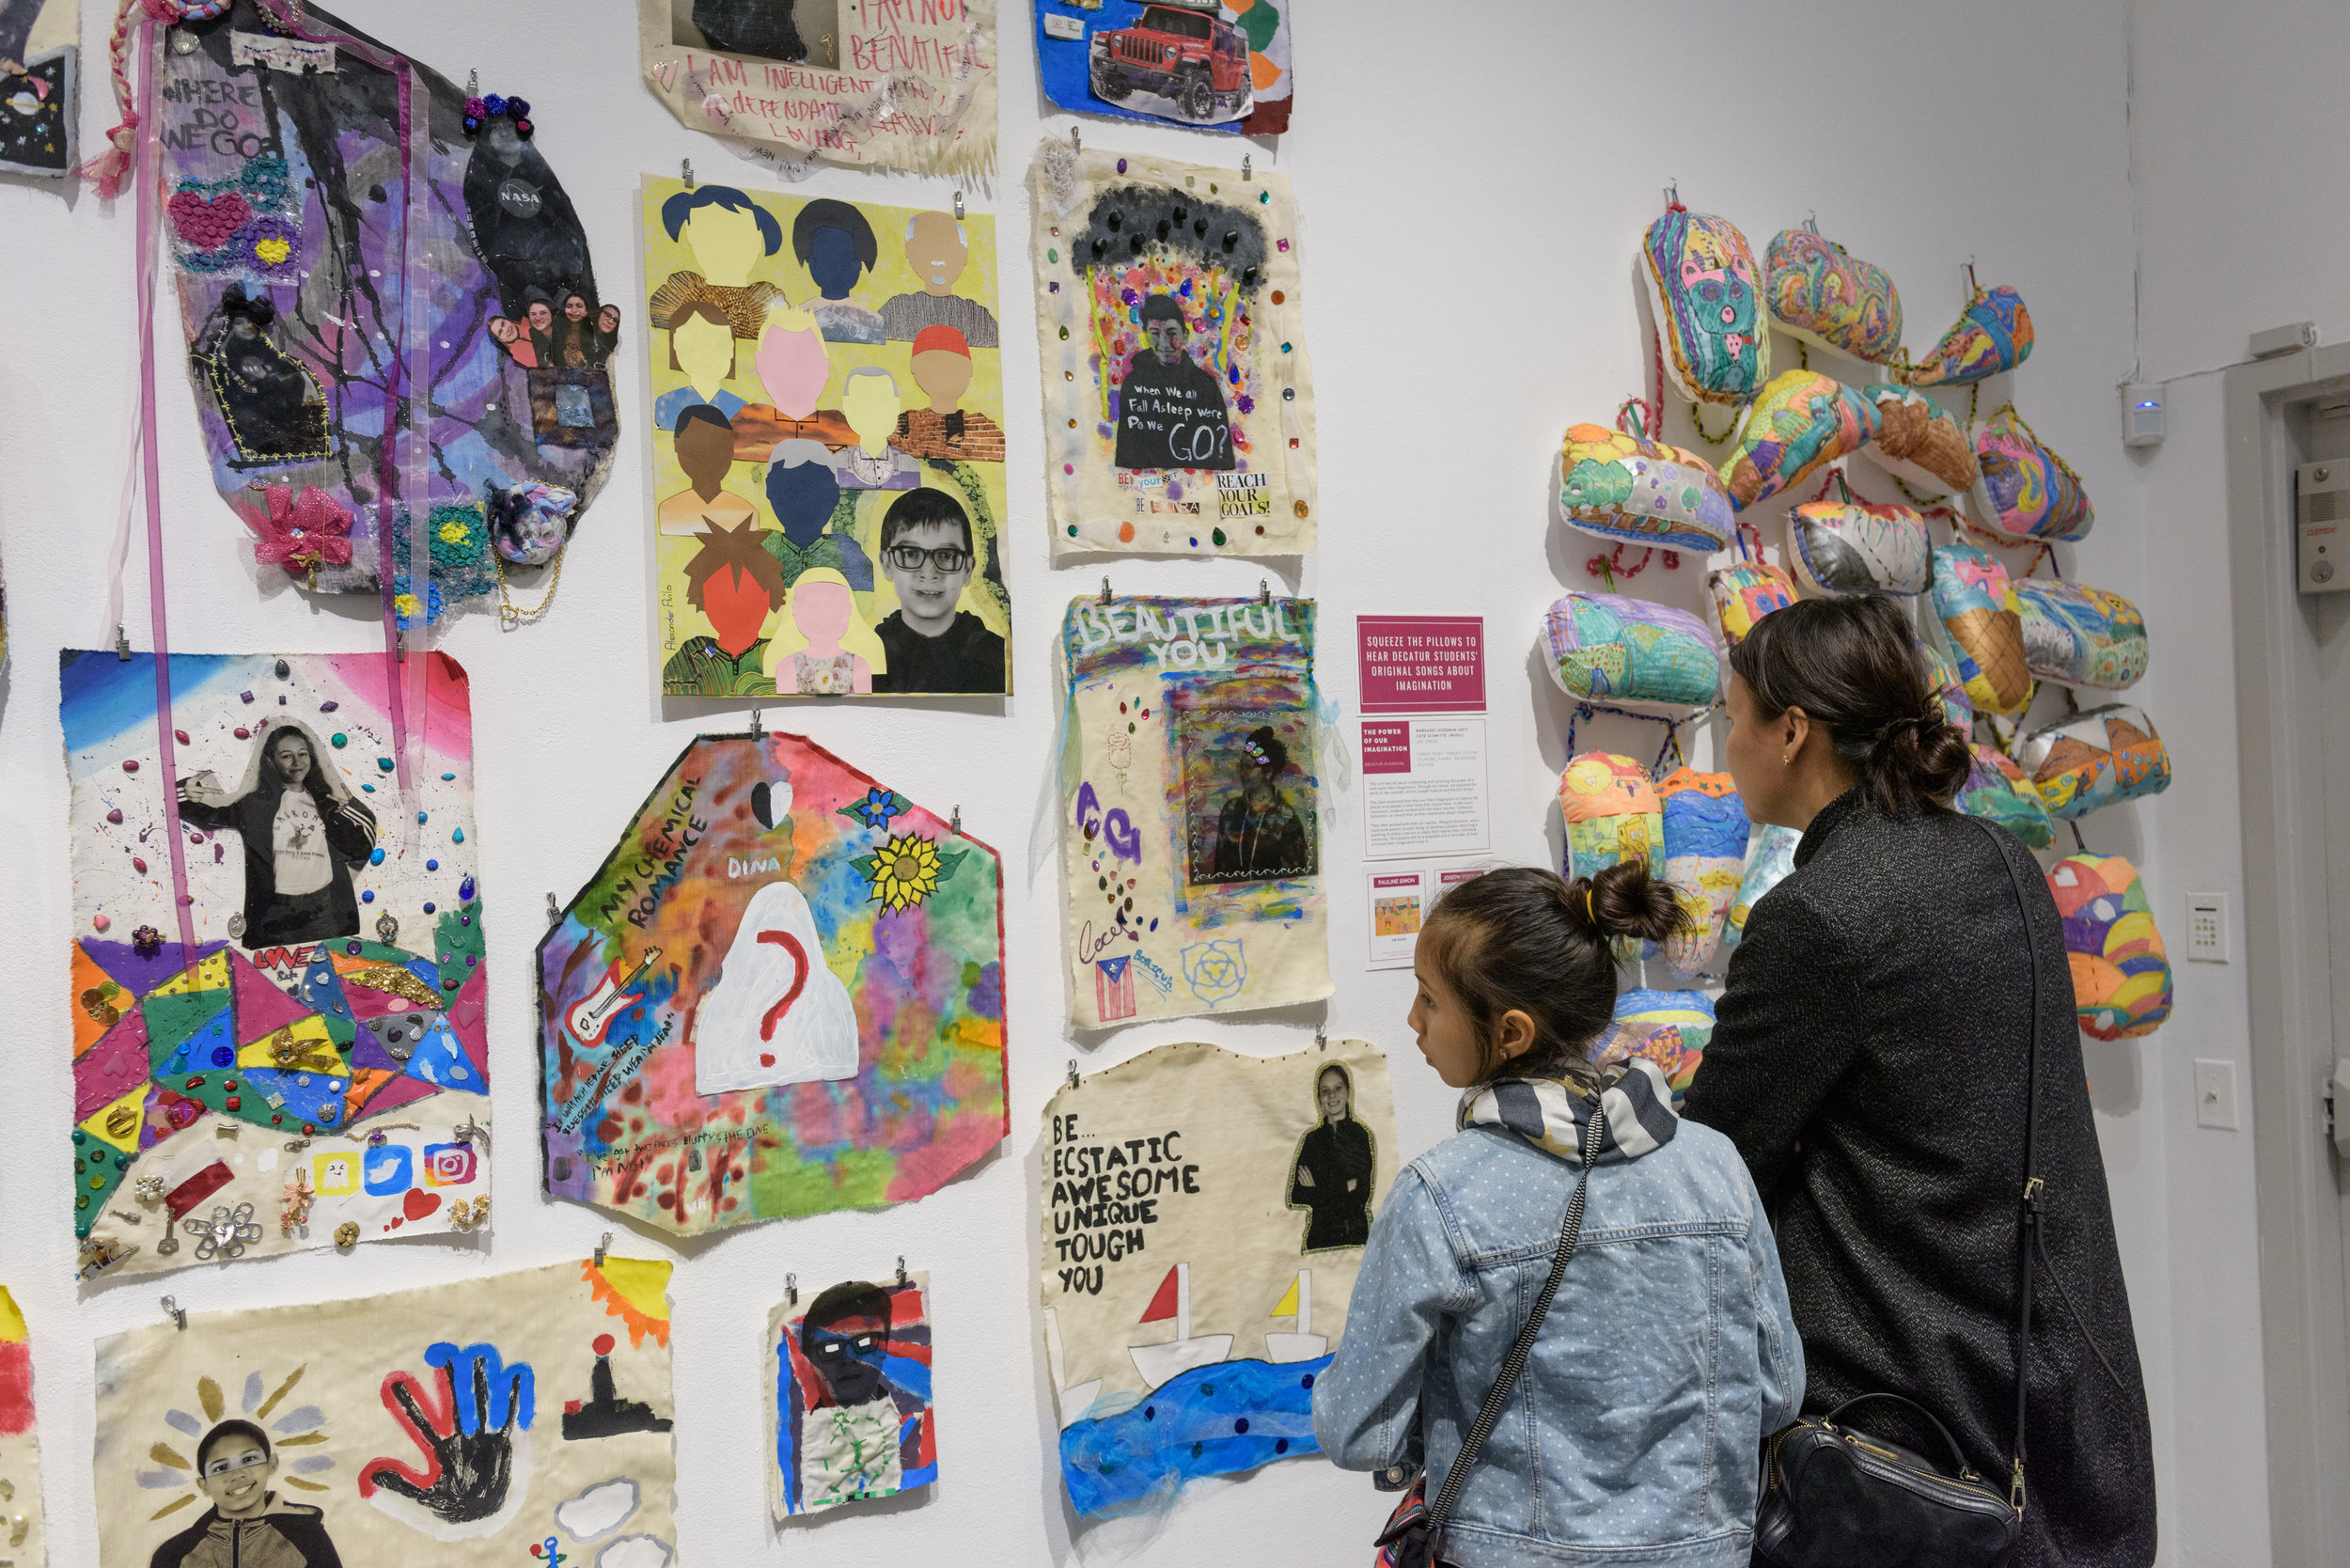 Museum showcases exhibition of artworks by Chicago Public Schools students - 5/30/19